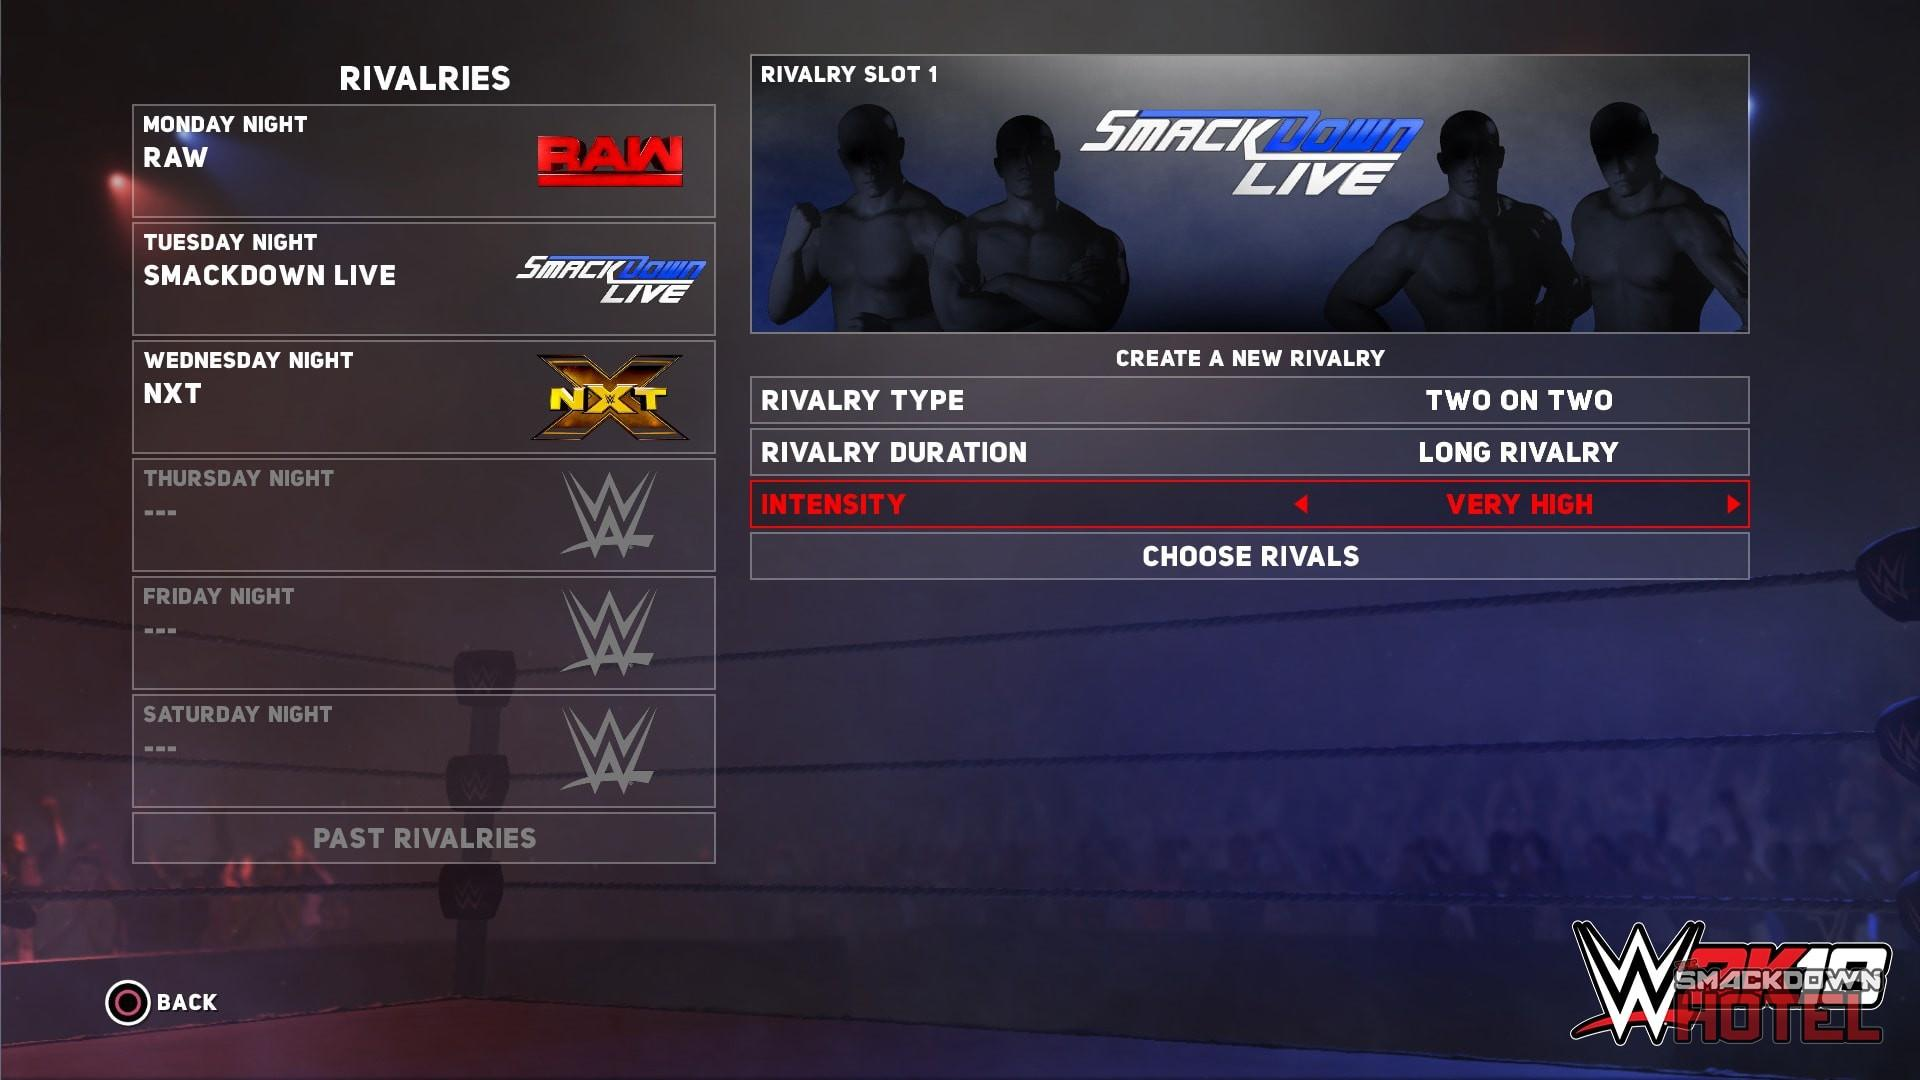 WWE2K18 Universe3 Rivalries